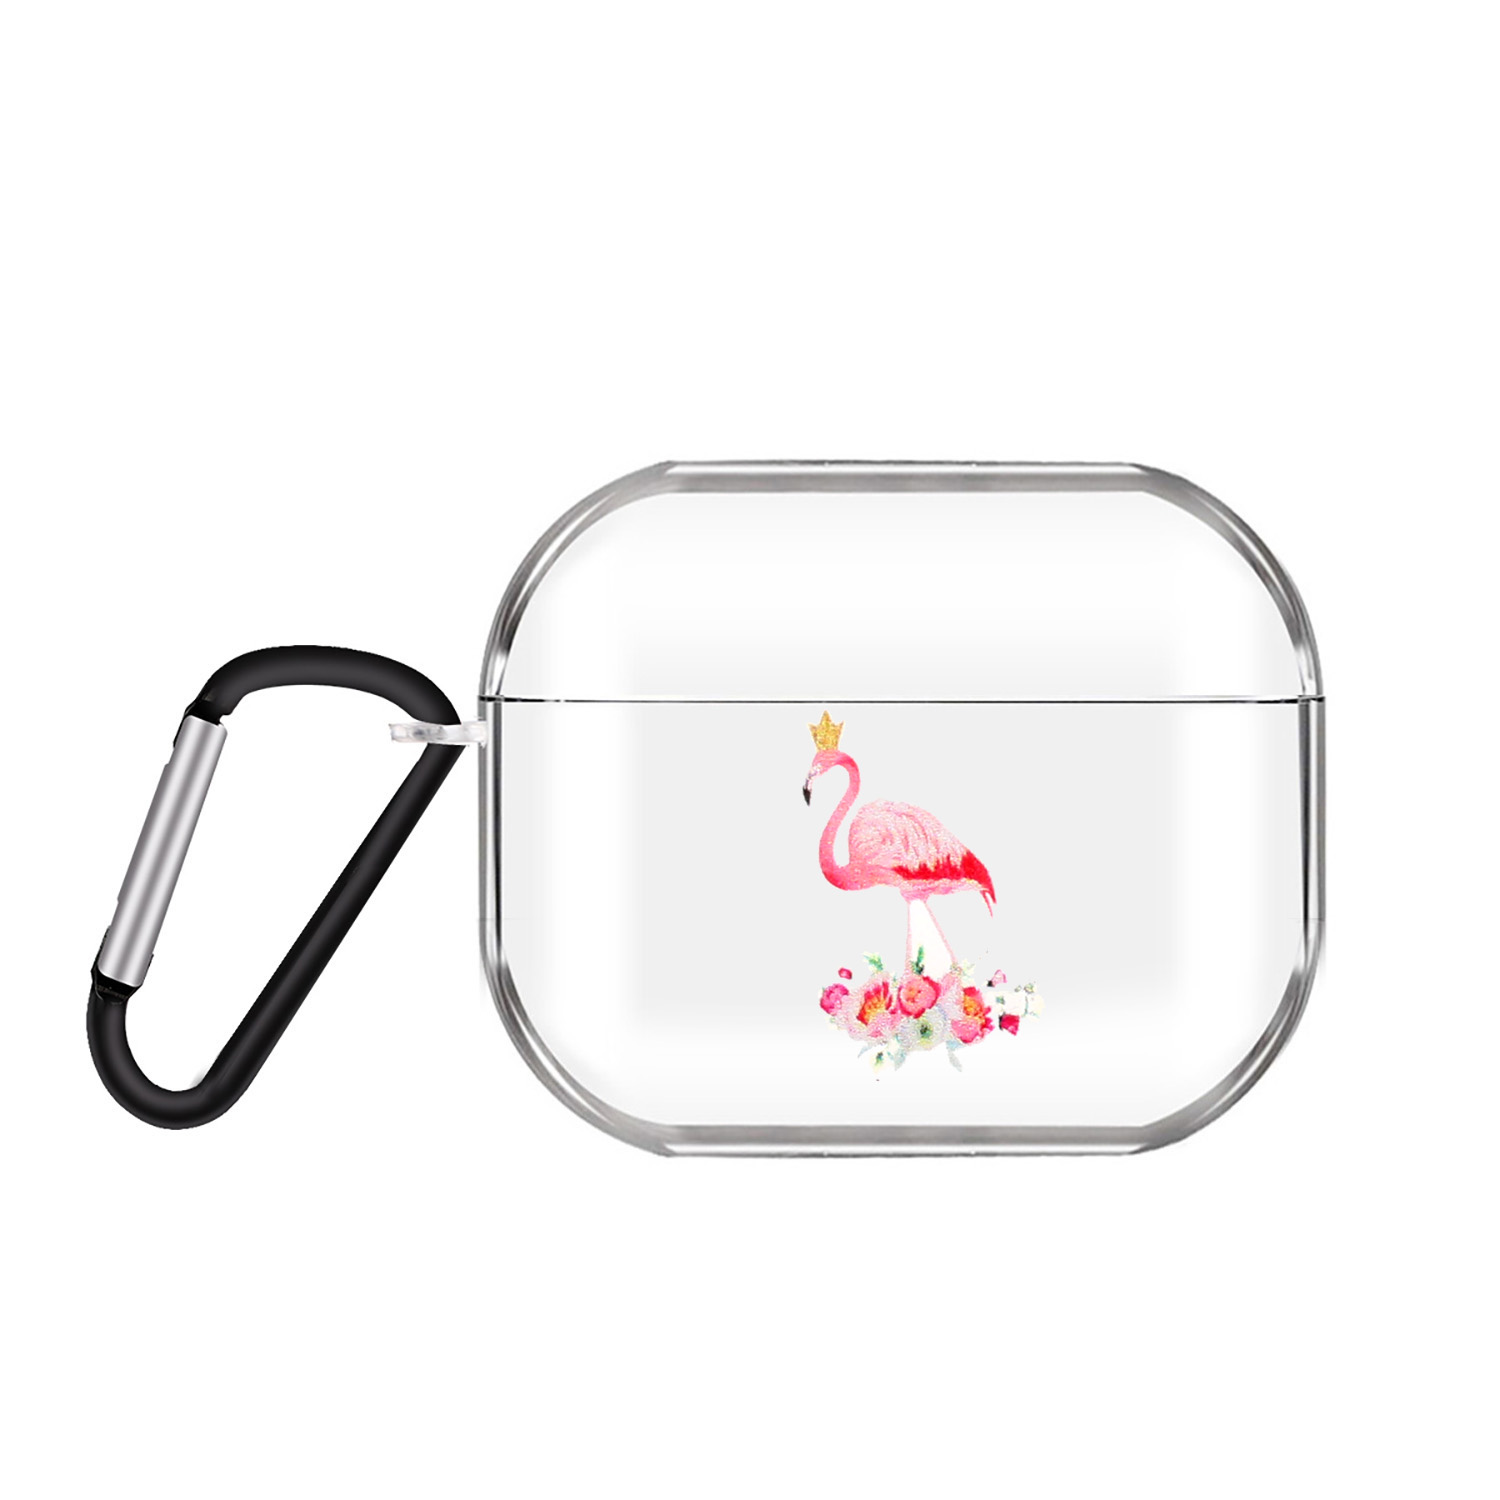 For AirPods Pro Headphones Case Cartoon Clear Earphone Shell with Metal Hook Full Protection Cover 14 Flamingo